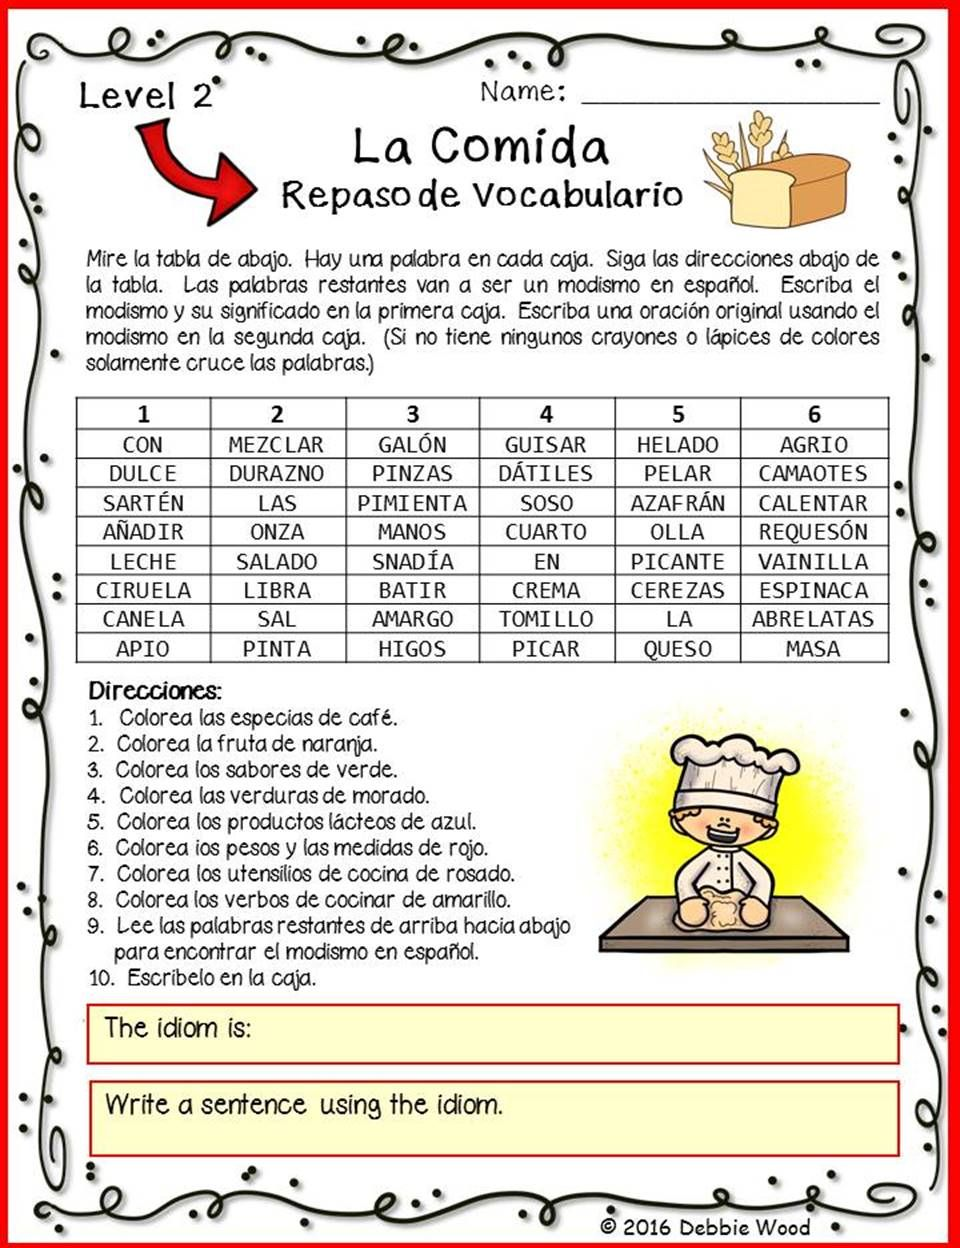 spanish food vocabulary review with idiom levels 1 and 2 food vocabulary spanish and worksheets. Black Bedroom Furniture Sets. Home Design Ideas